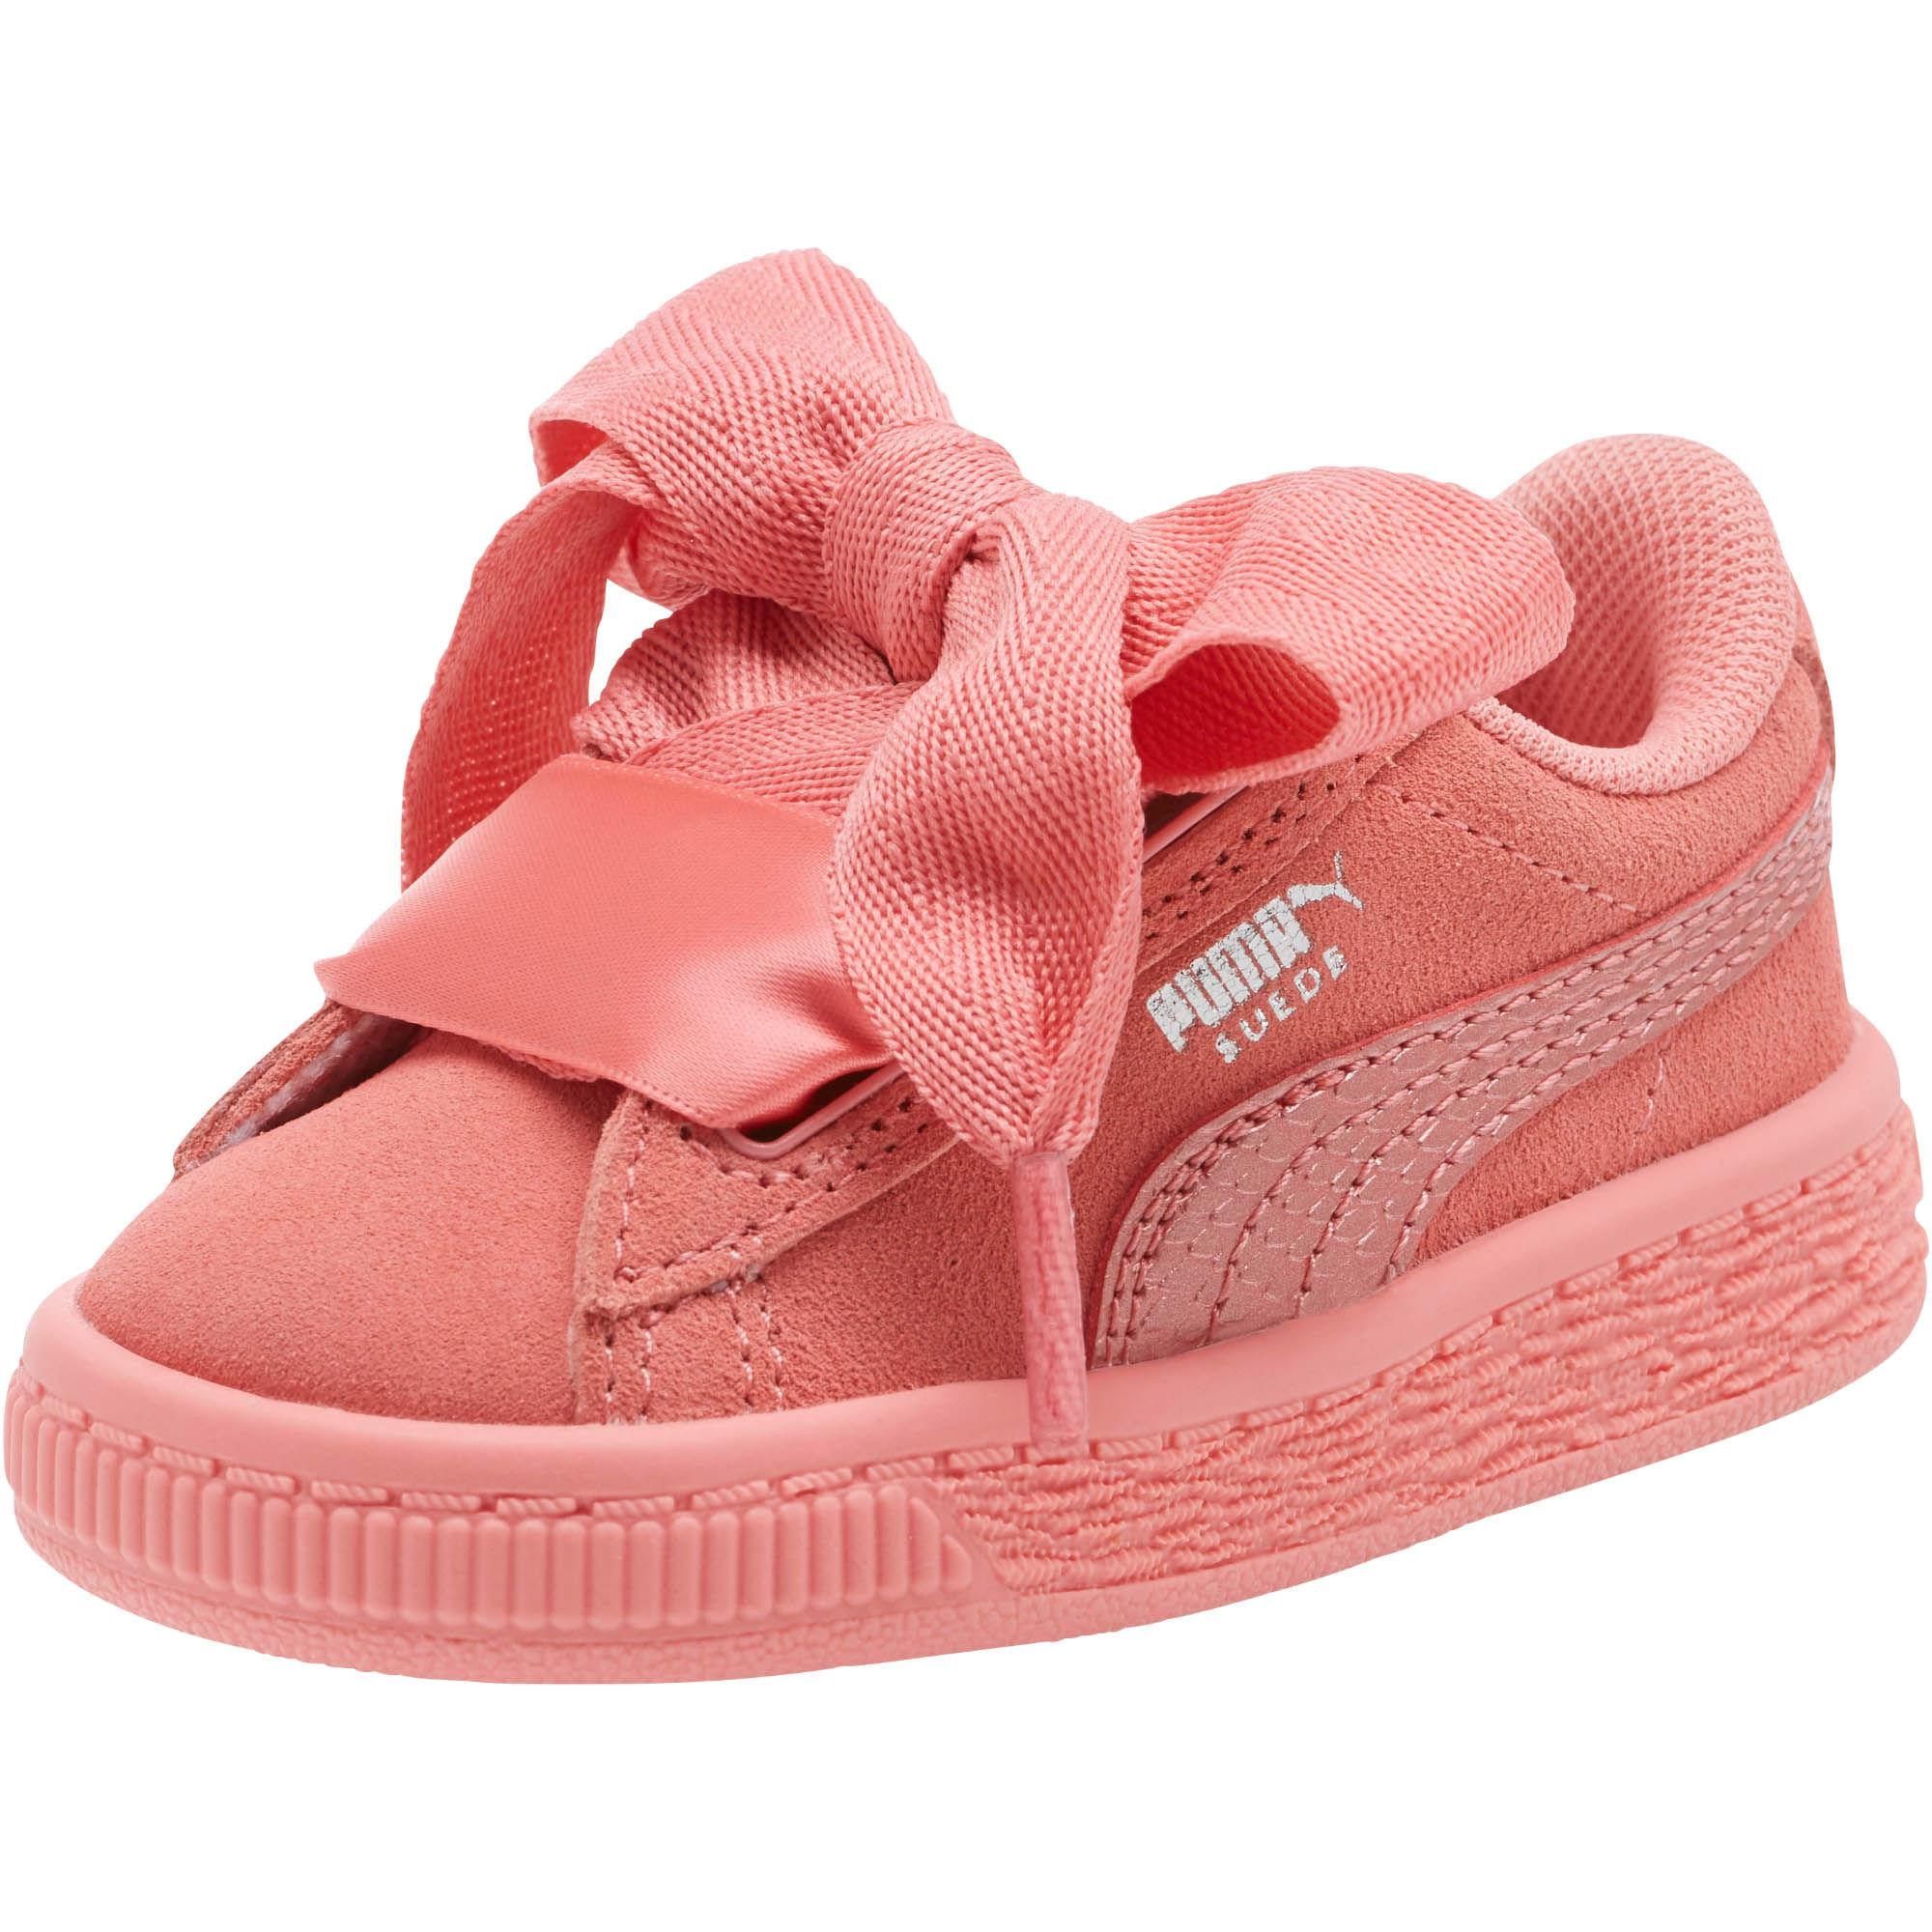 68ae2a1be62 Lyst - PUMA Suede Heart Preschool Sneakers in Pink